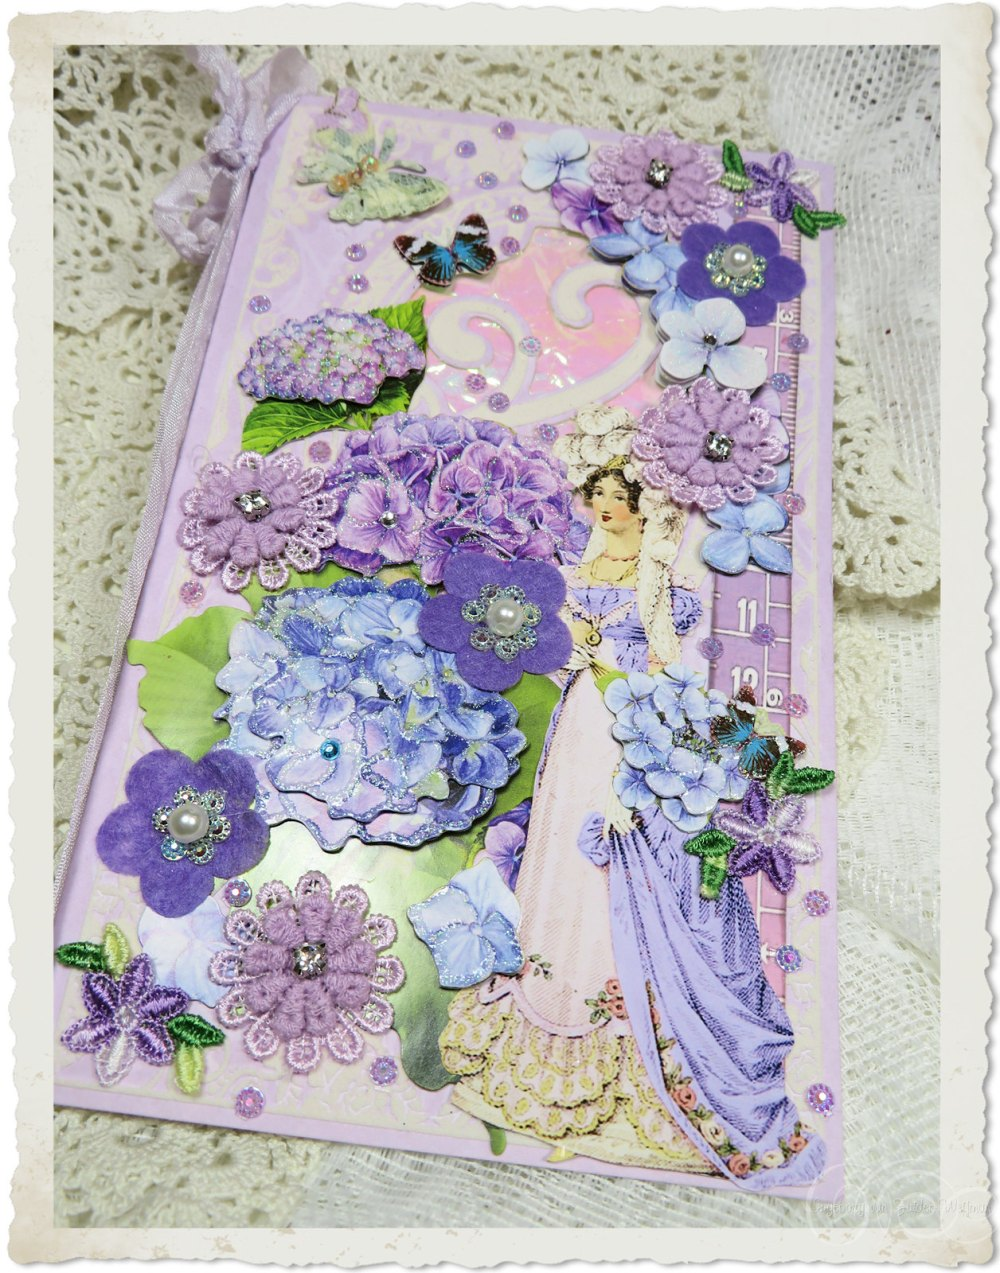 Regency style greeting card with fabric flower appliques